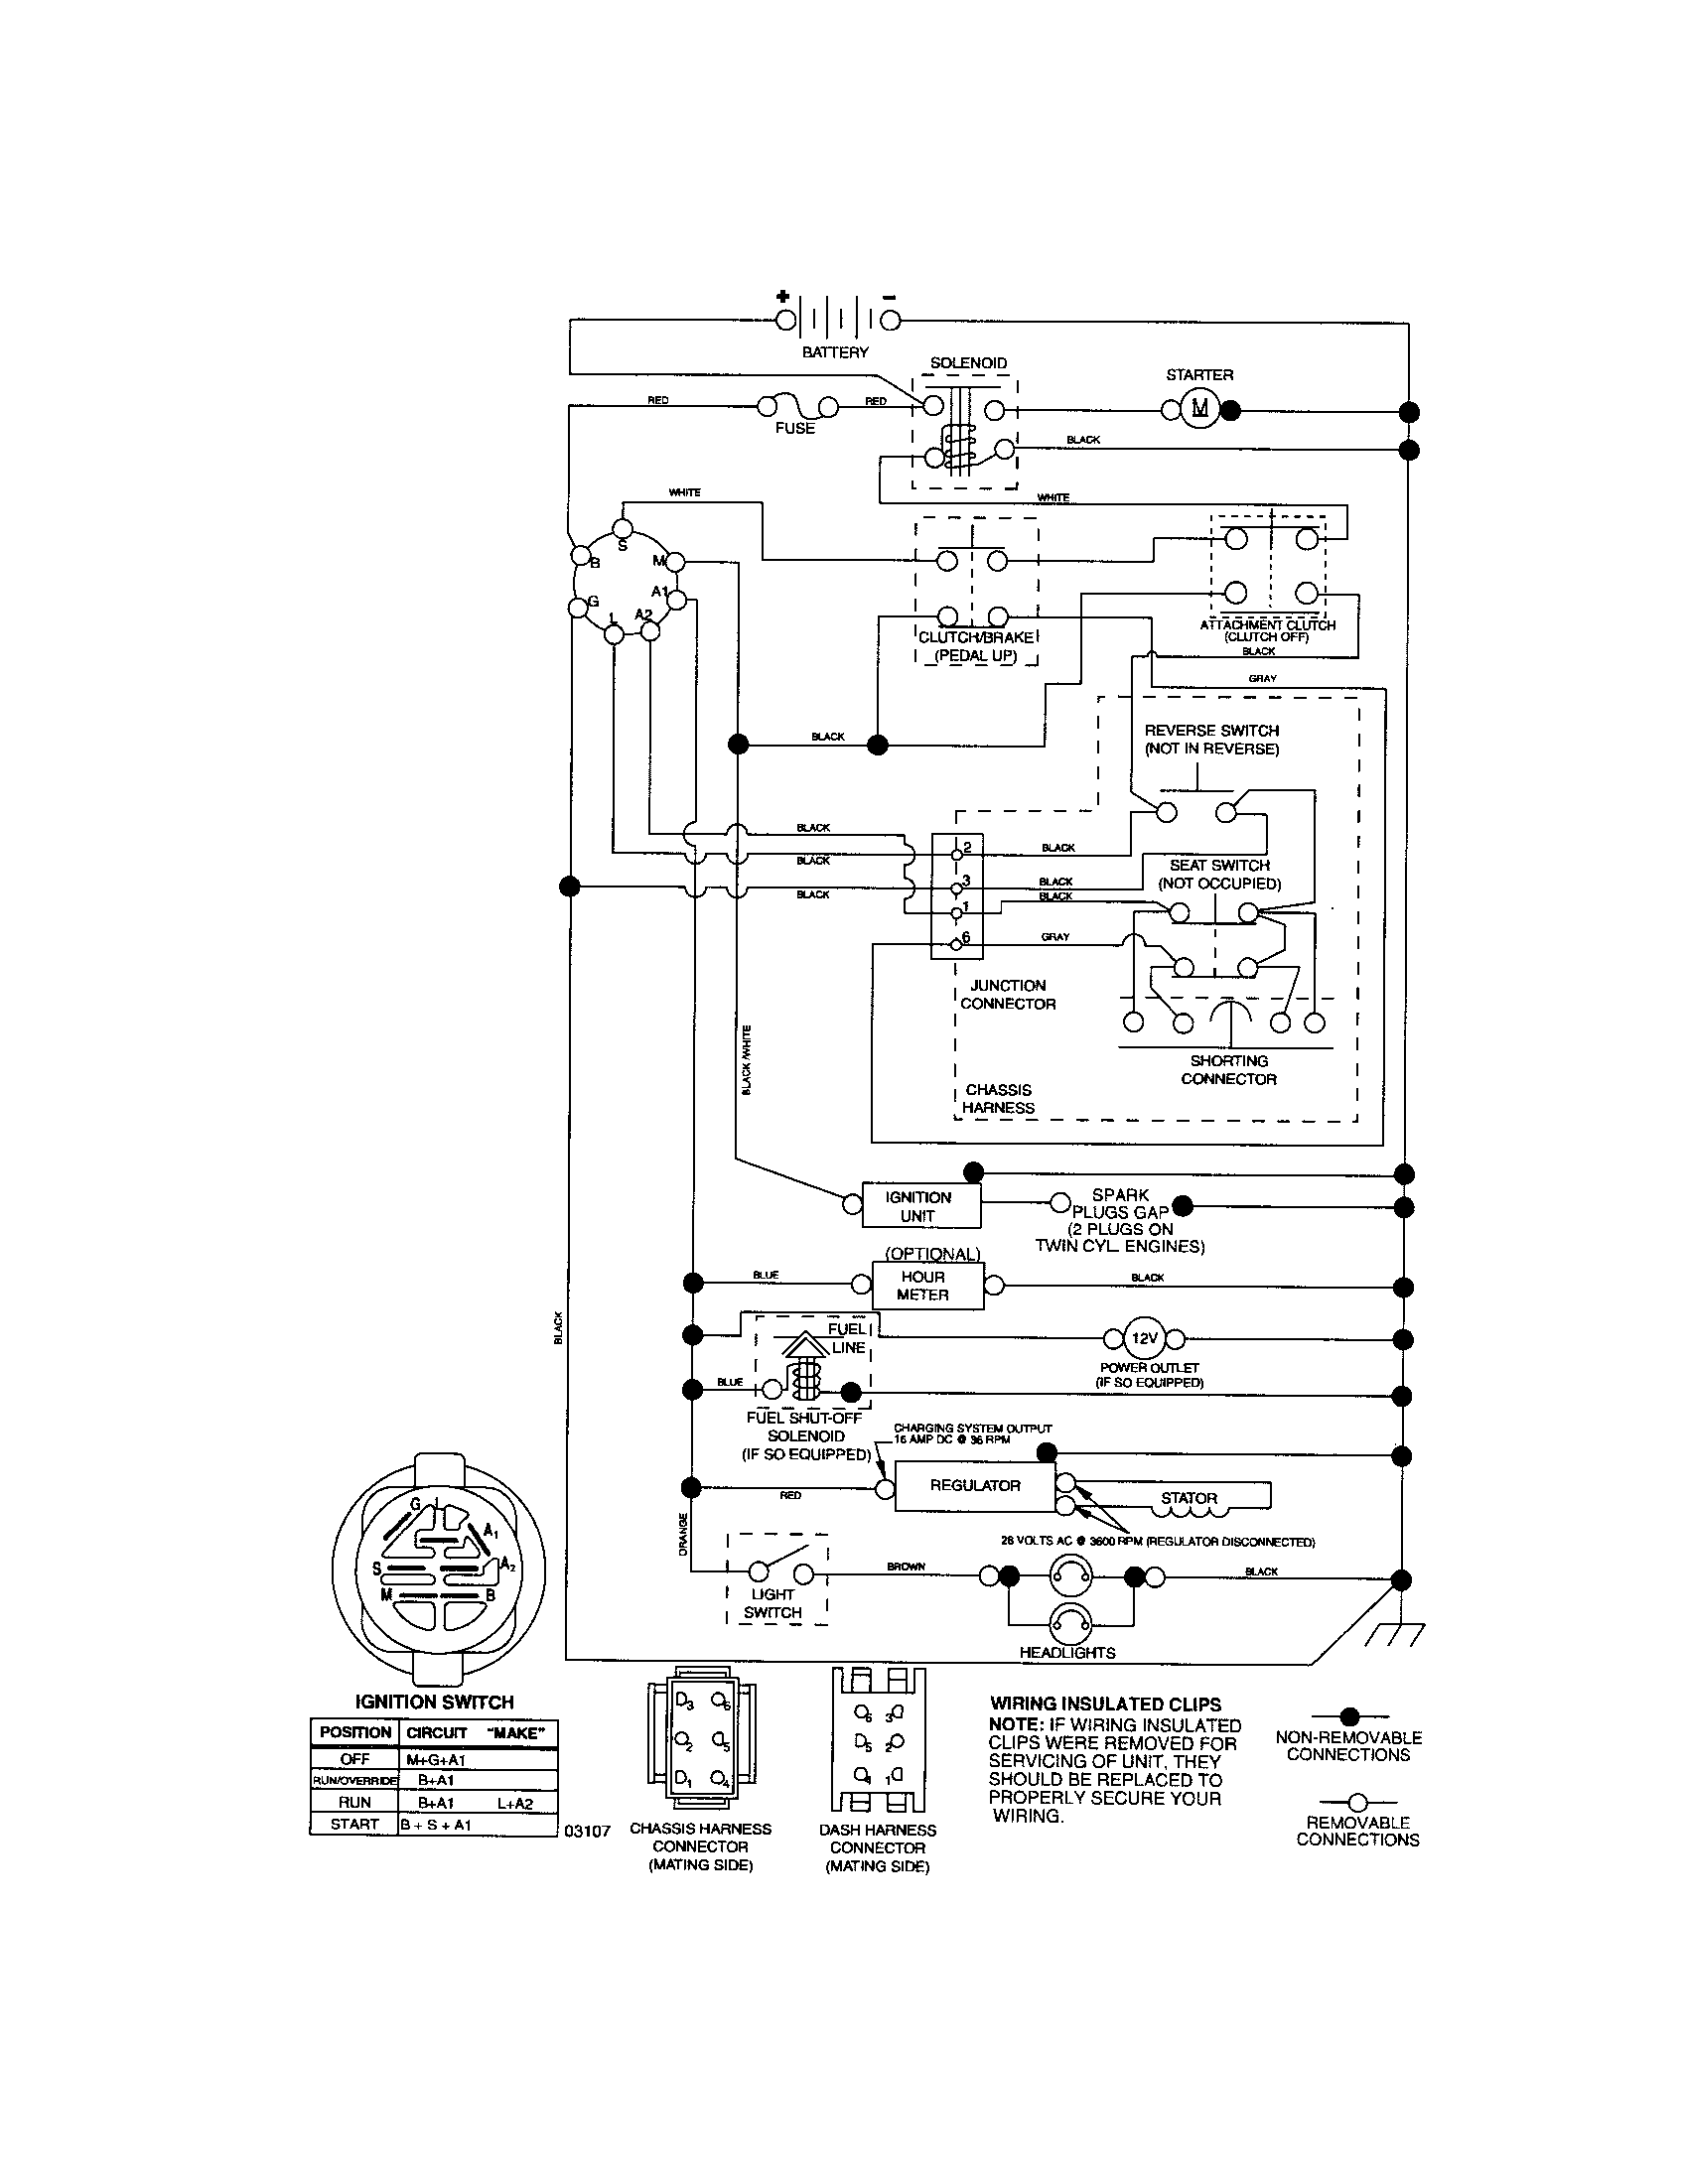 craftsman riding mower electrical diagram wiring diagram craftsman rh pinterest com Ignition Wiring Diagram Ford Ignition System Wiring Diagram